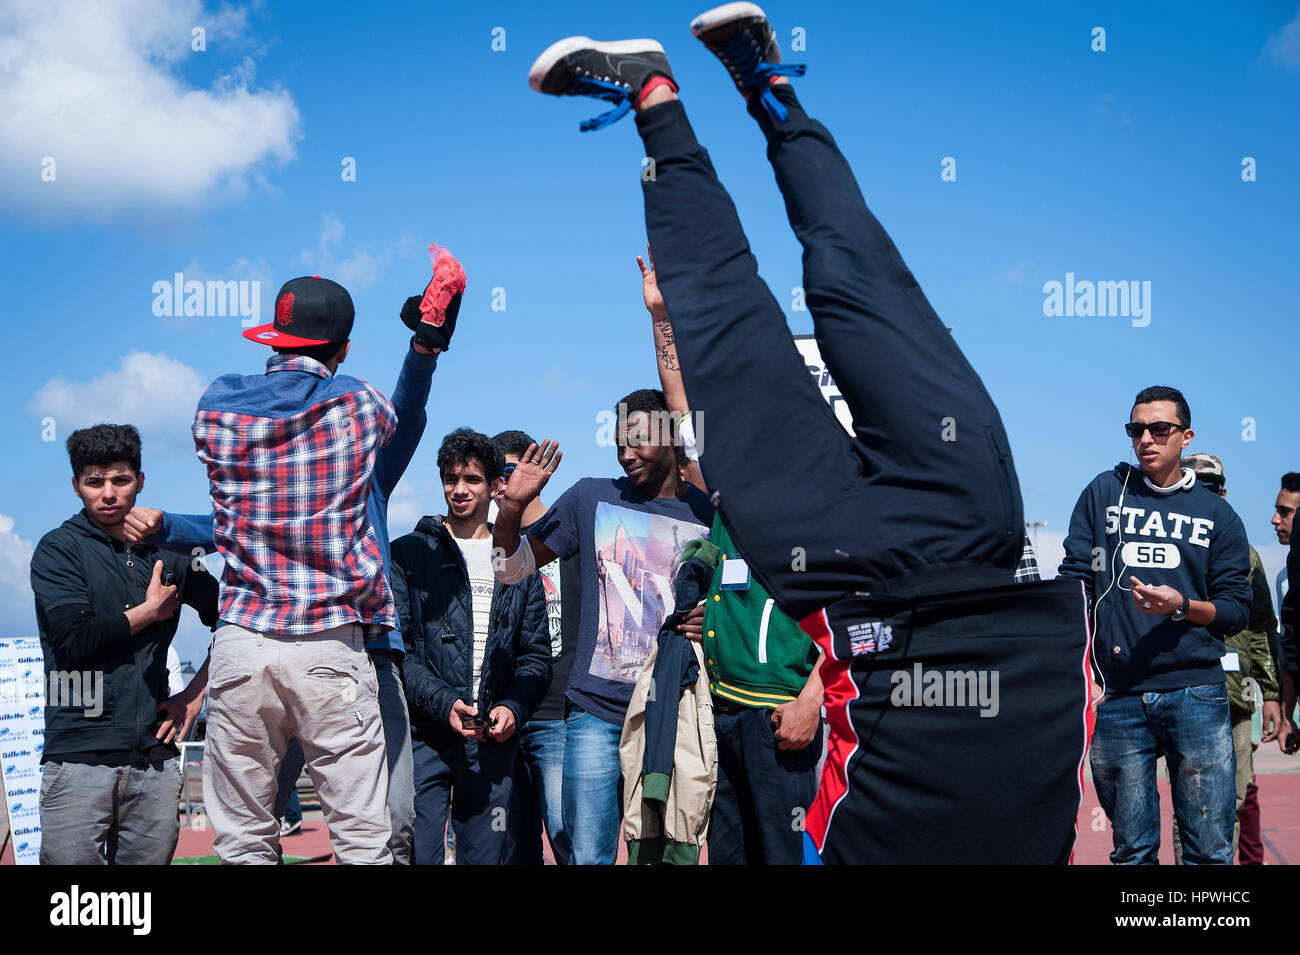 La Libye, Tripoli : Les jeunes gars breakdance à un open air festival de danse et de parkour. Photo Stock